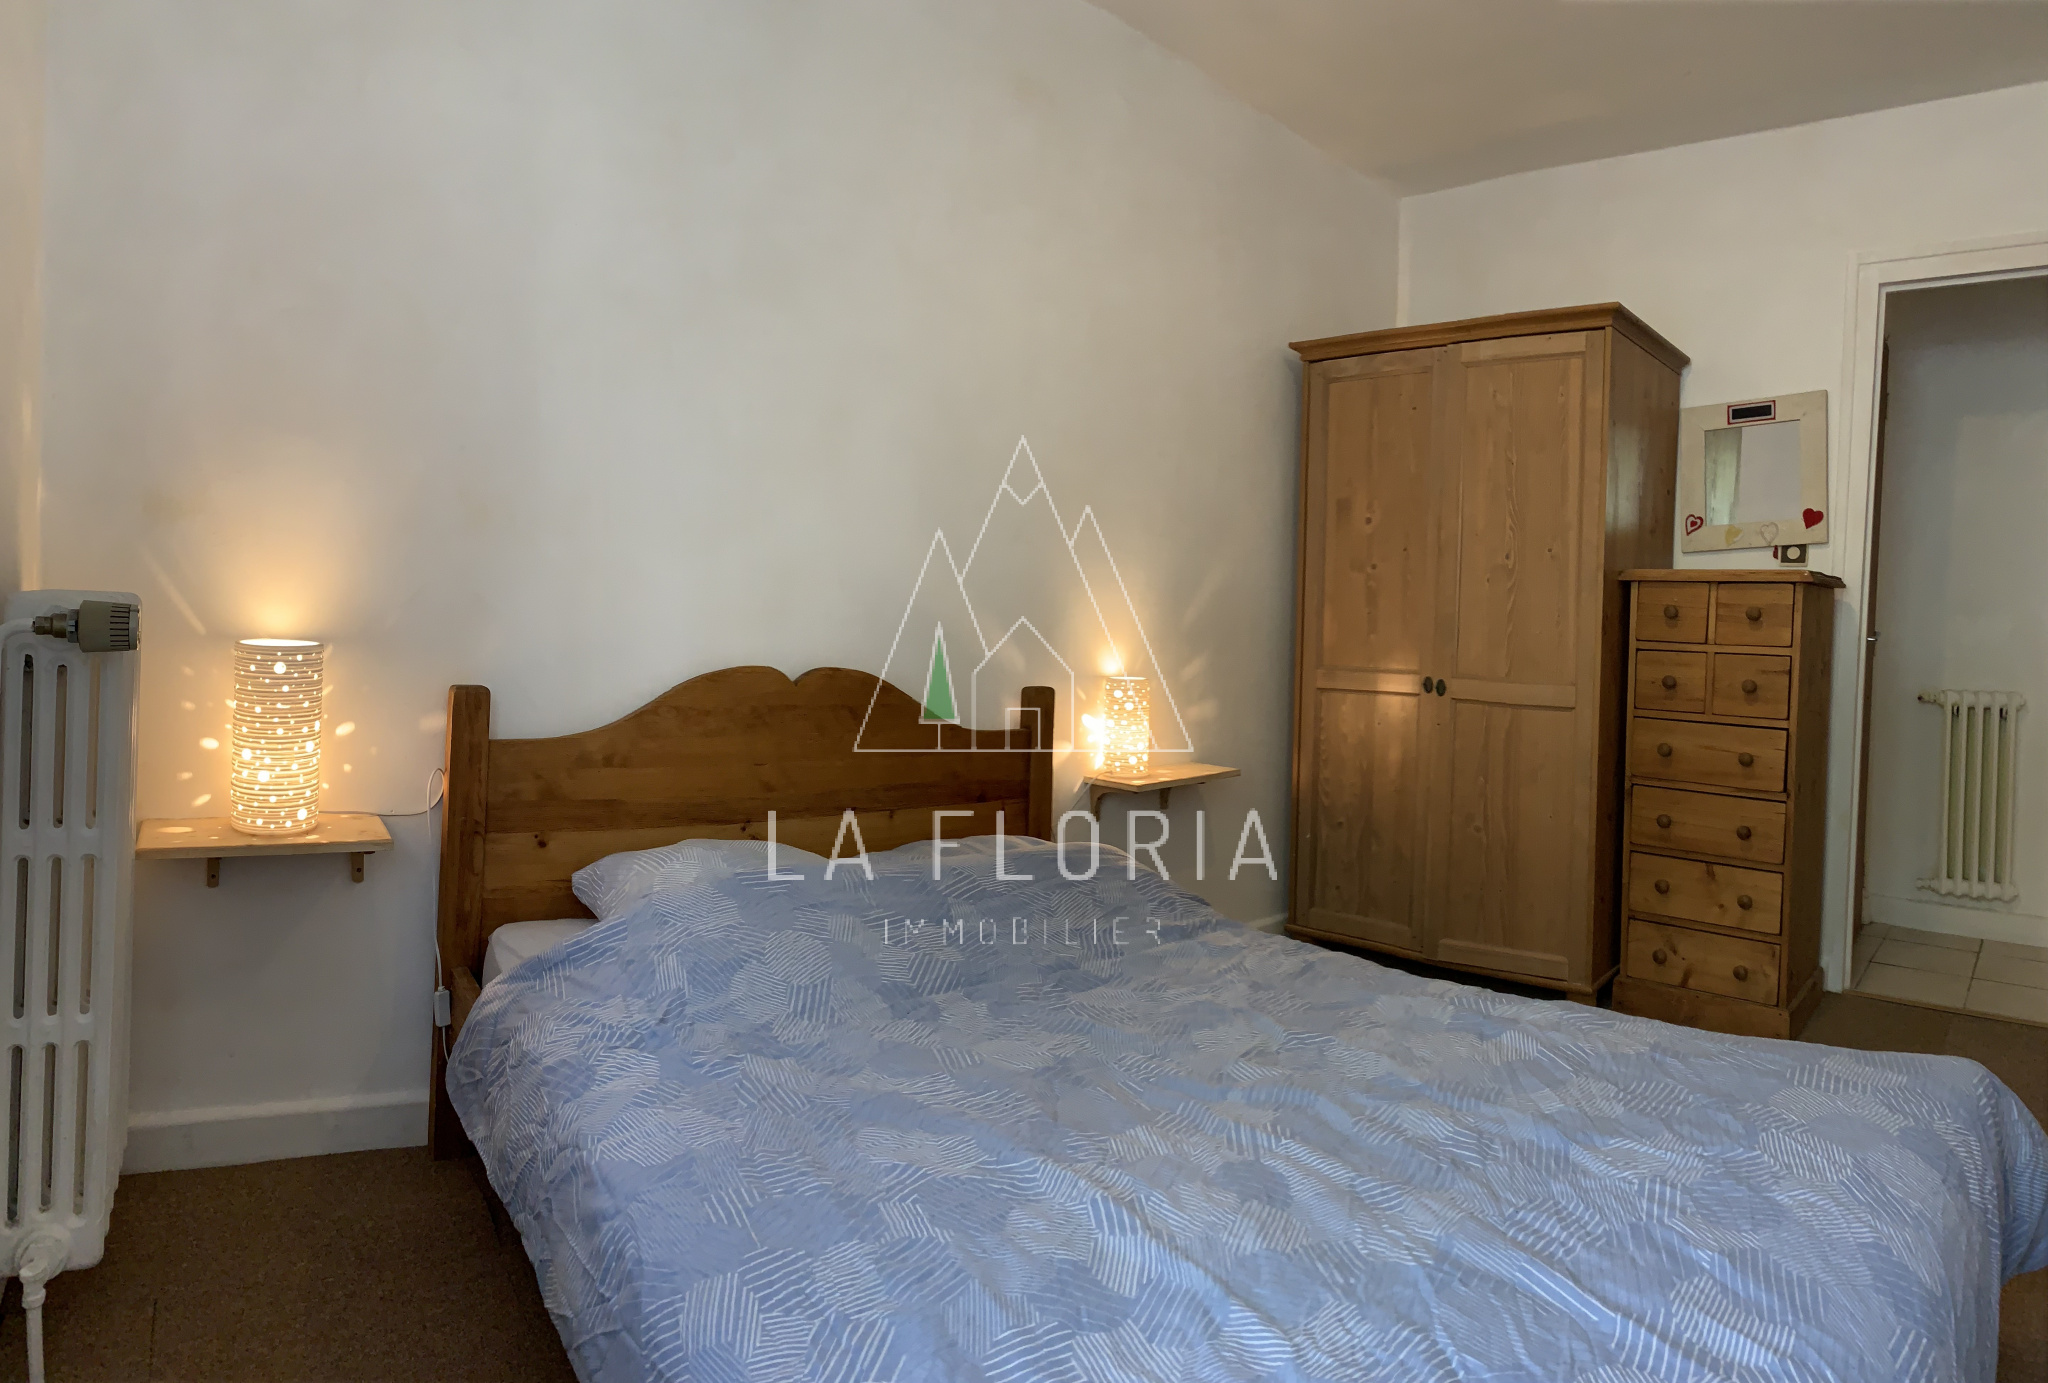 TWO BEDROOM APARTMENT, CHAMONIX CENTRE